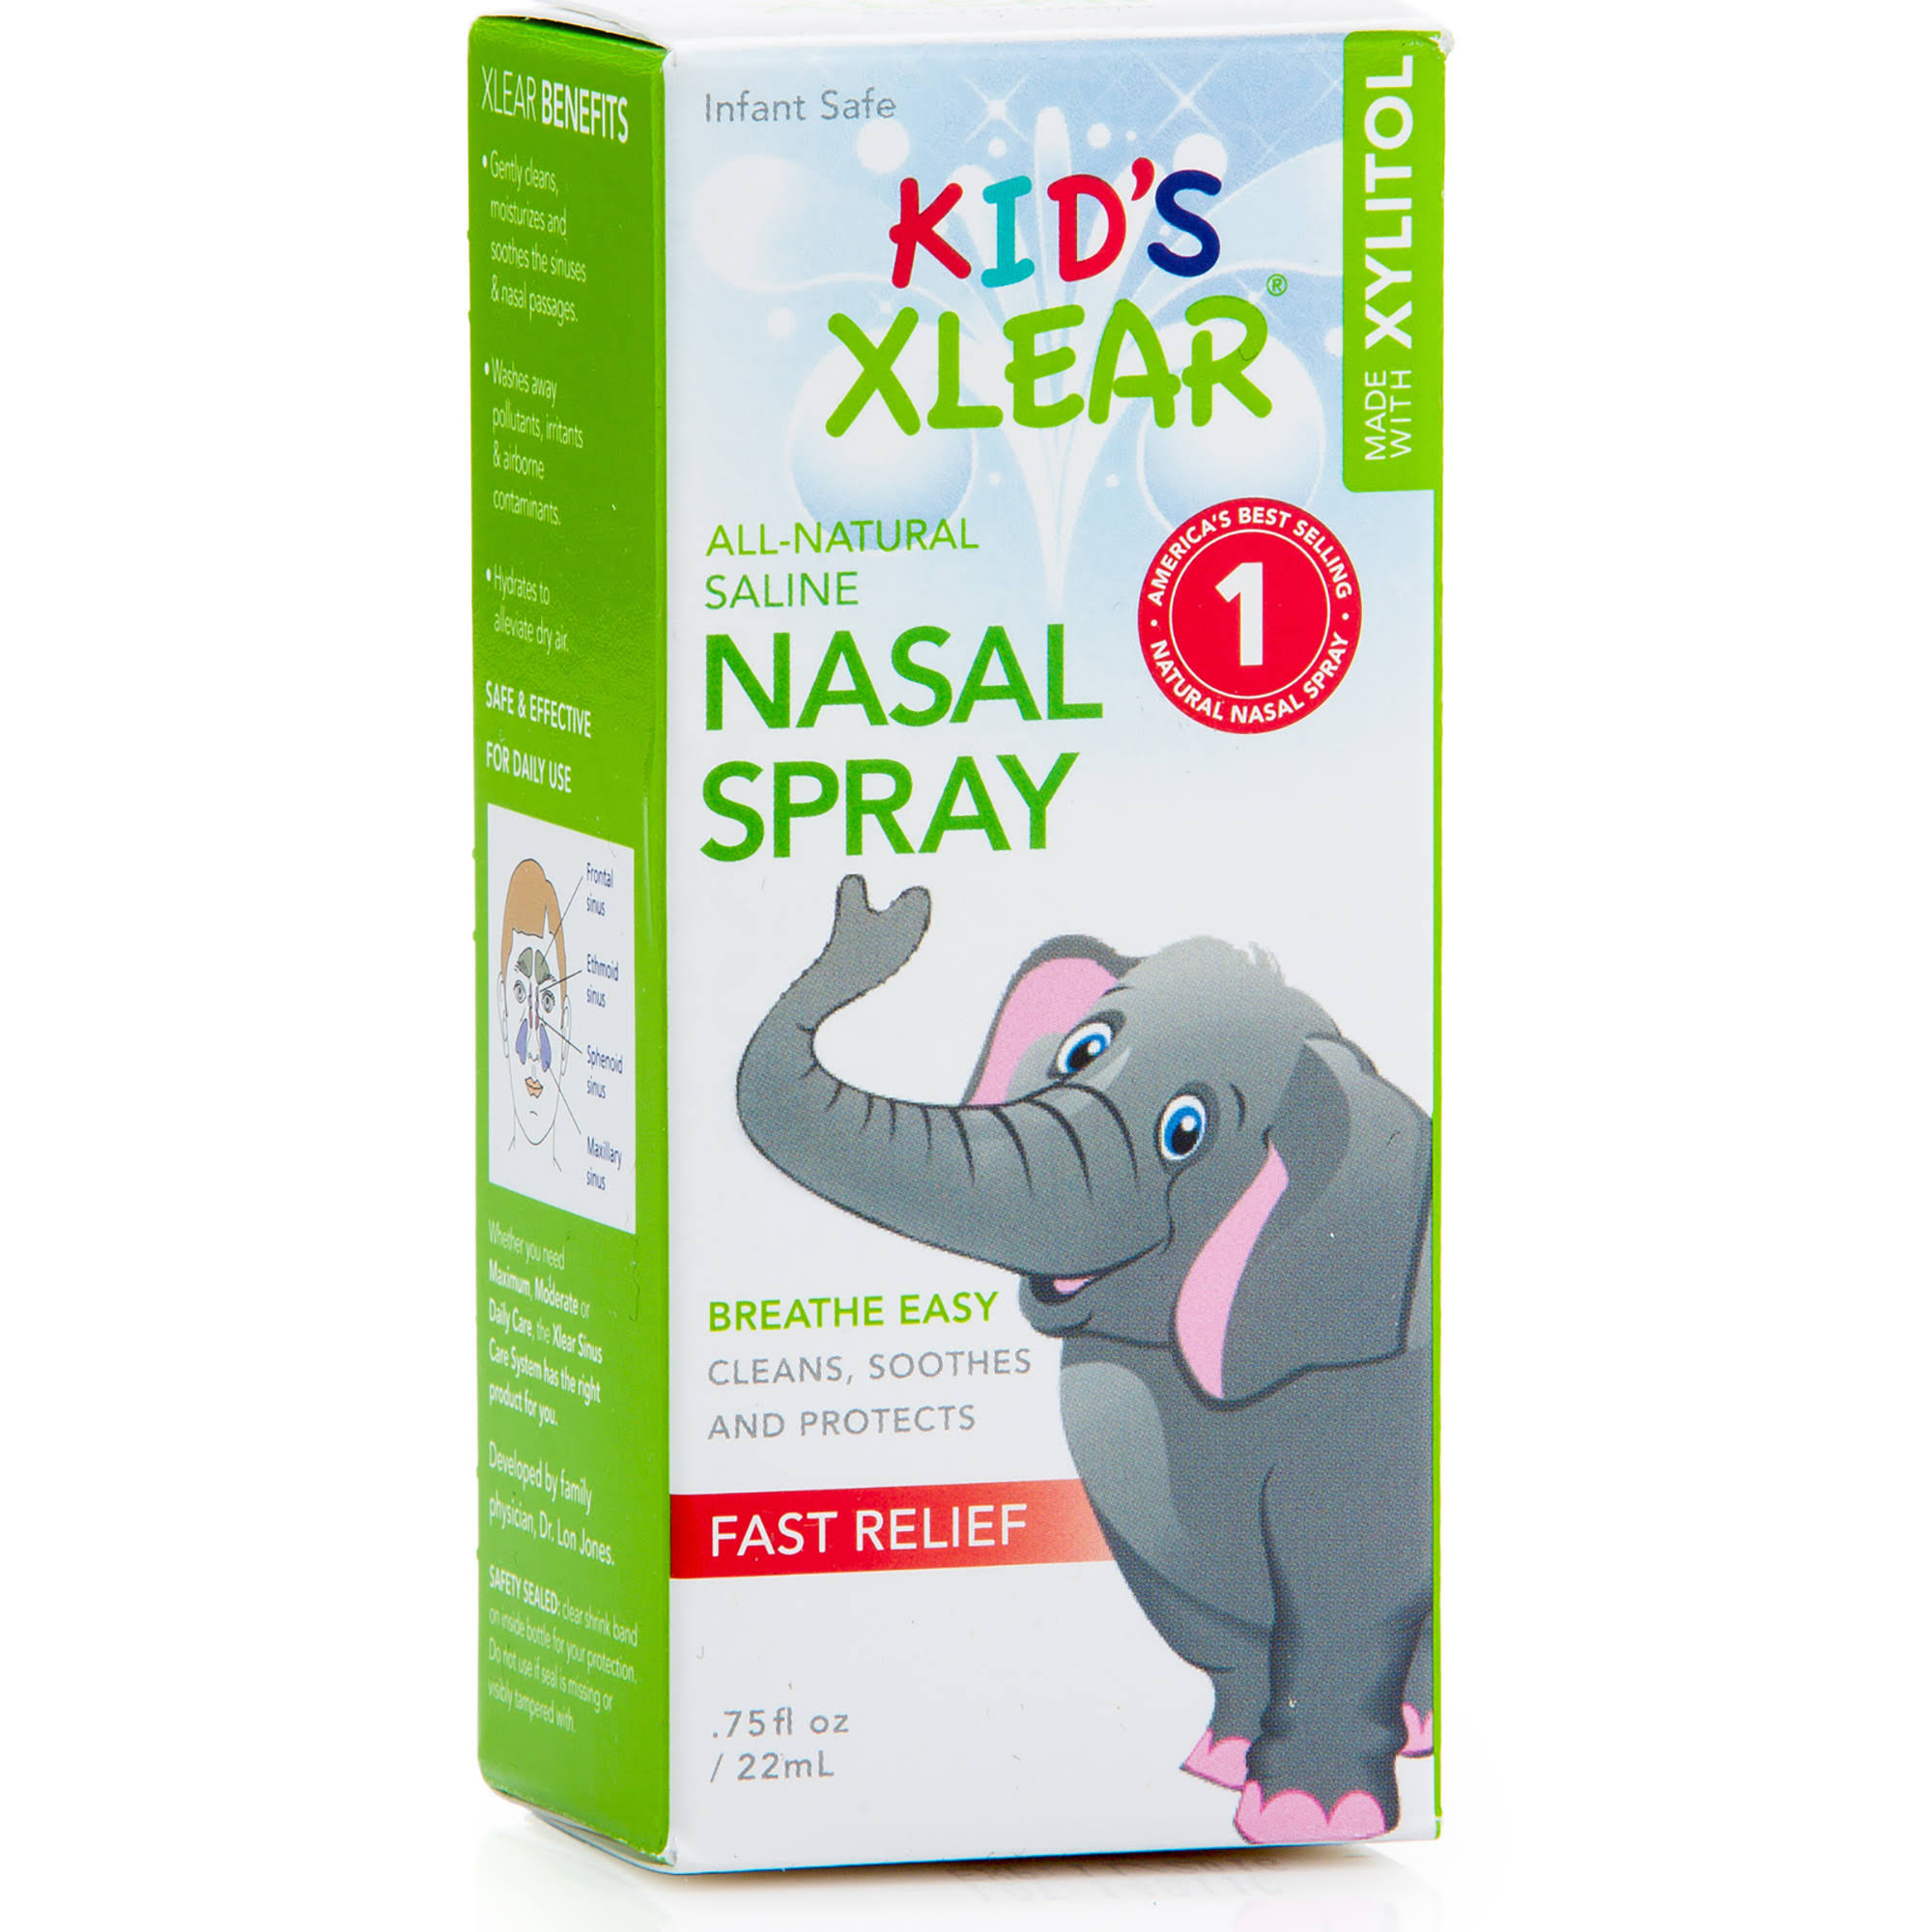 Xlear Kid's Natural Saline Nasal Spray - 22ml